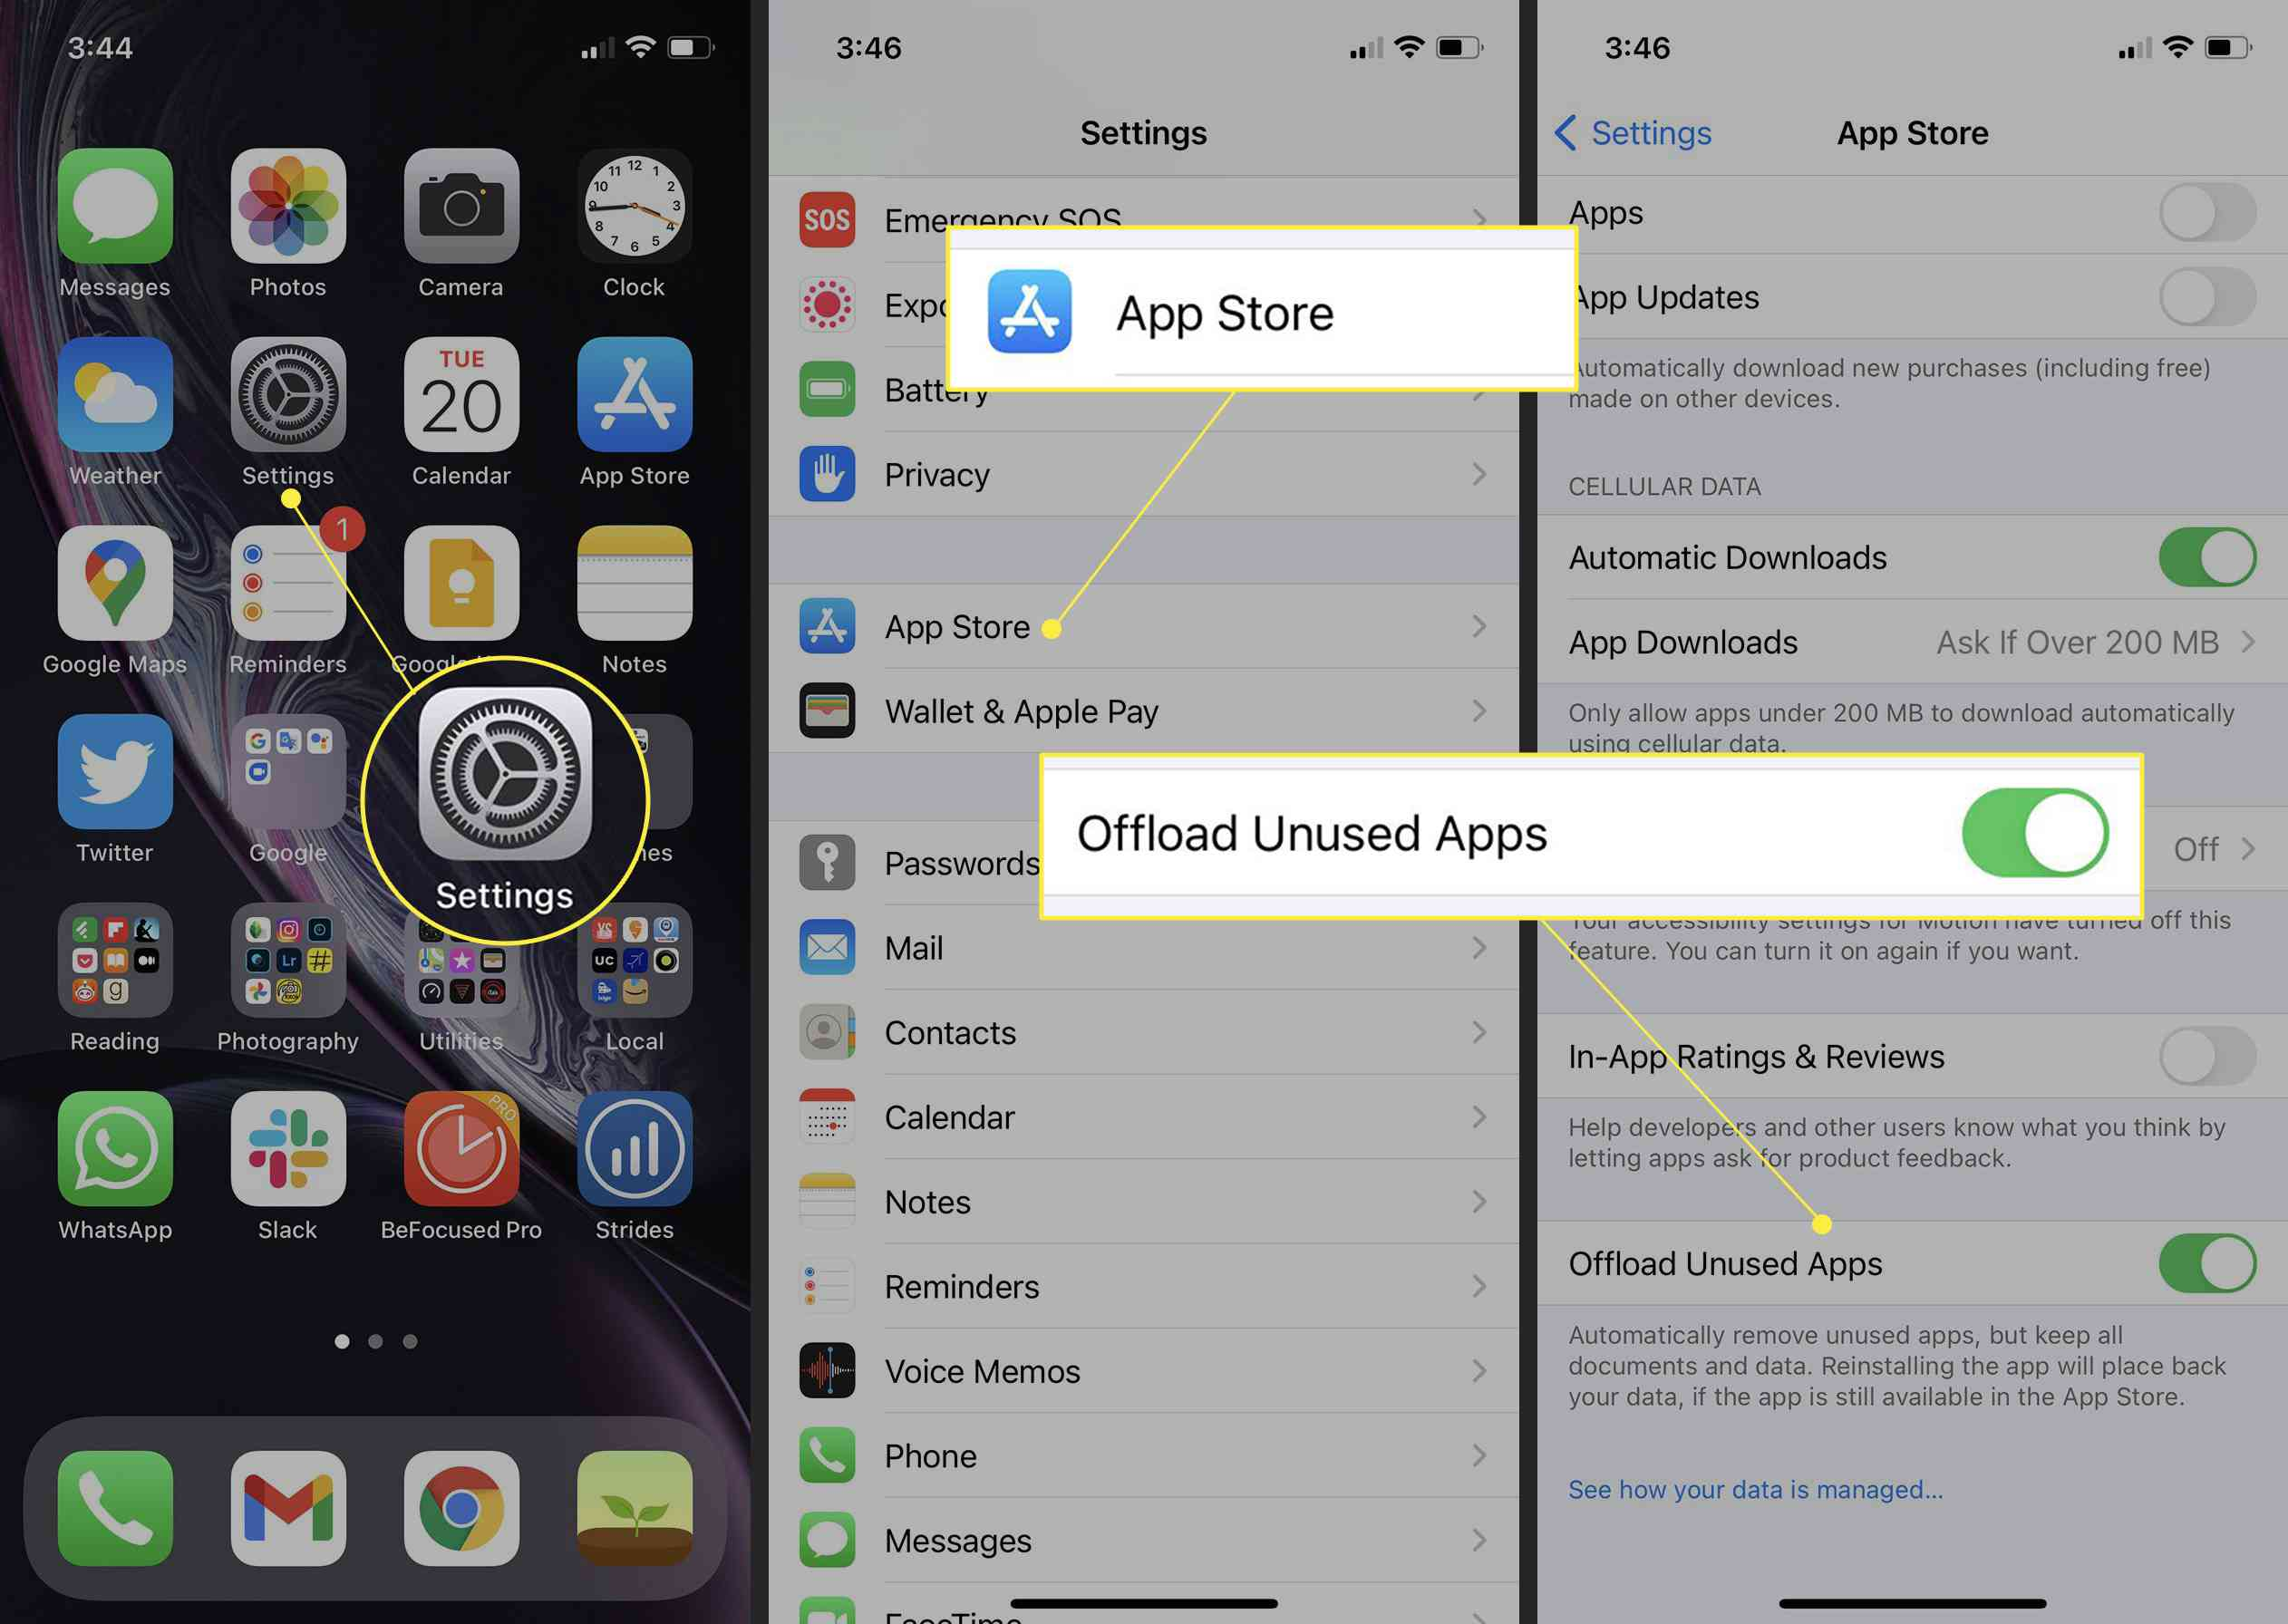 iPhone with Settings, App Store, and